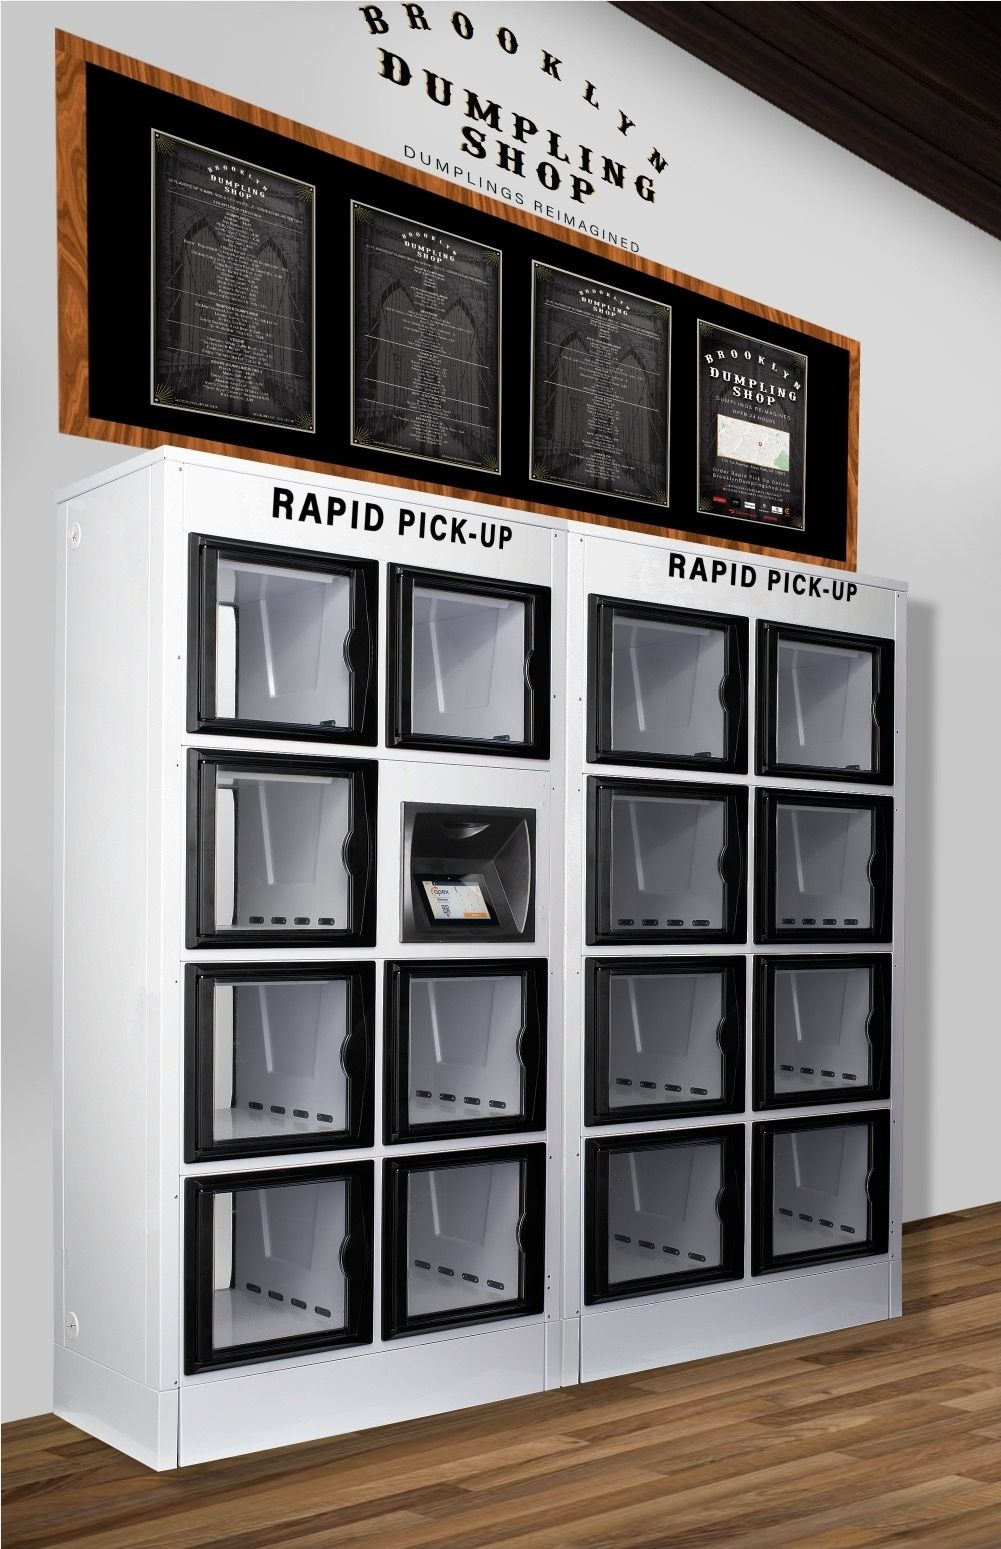 A stack of glass lockers with a blackboard on top that has food items printed on it